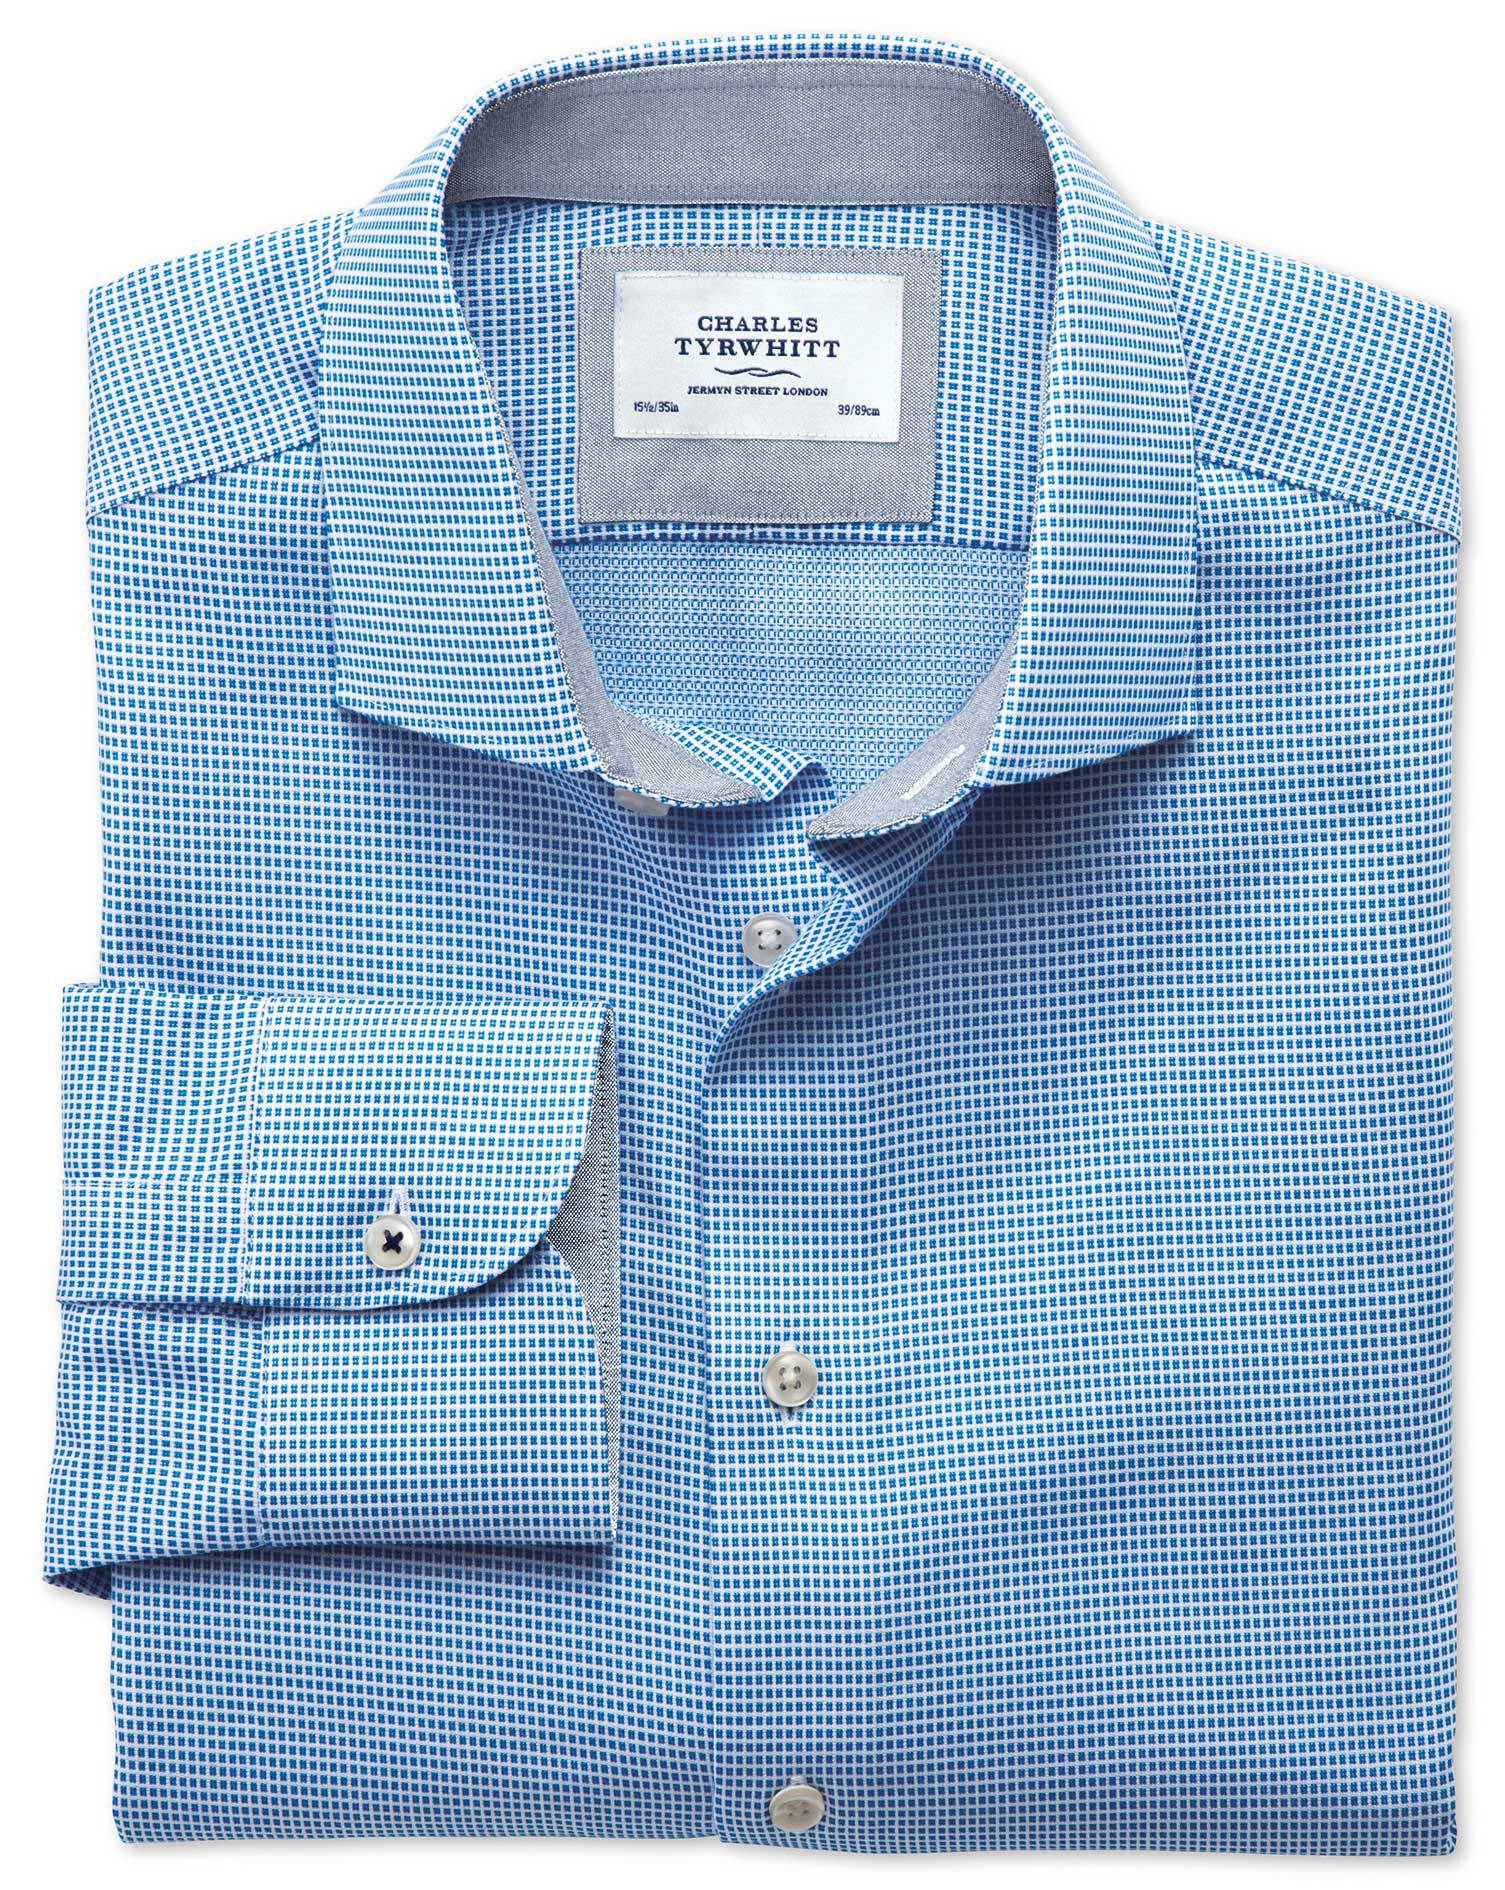 Slim Fit Semi-Cutaway Collar Business Casual Textured Blue Cotton Formal Shirt Single Cuff Size 18/3